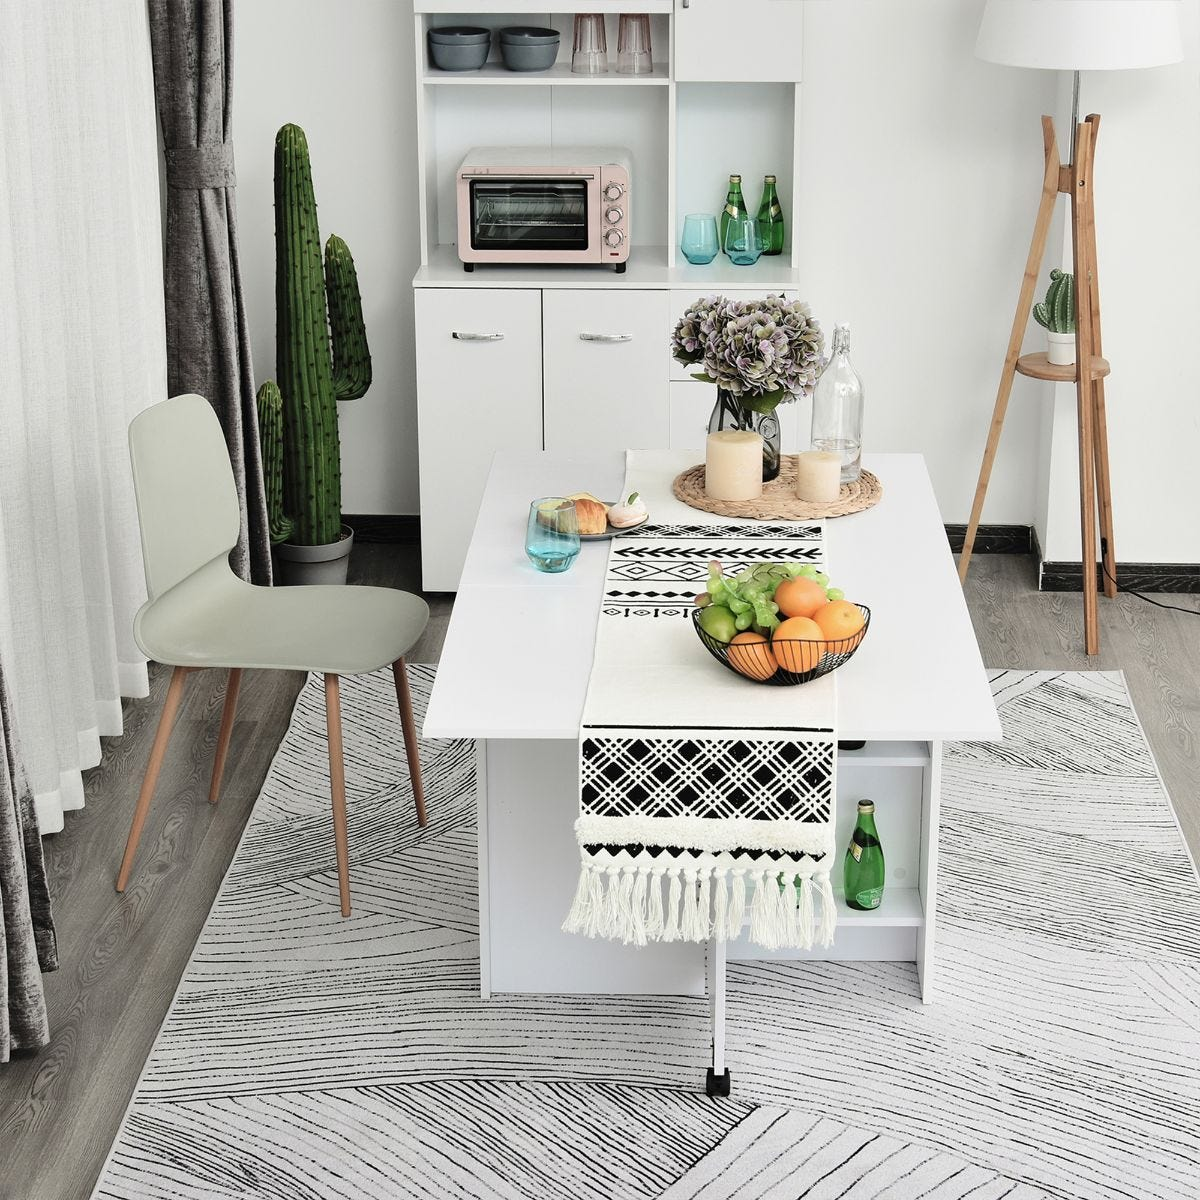 Mobile Drop Leaf Dining Table Folding Desk With 2 Wheels And Storage Shelves White